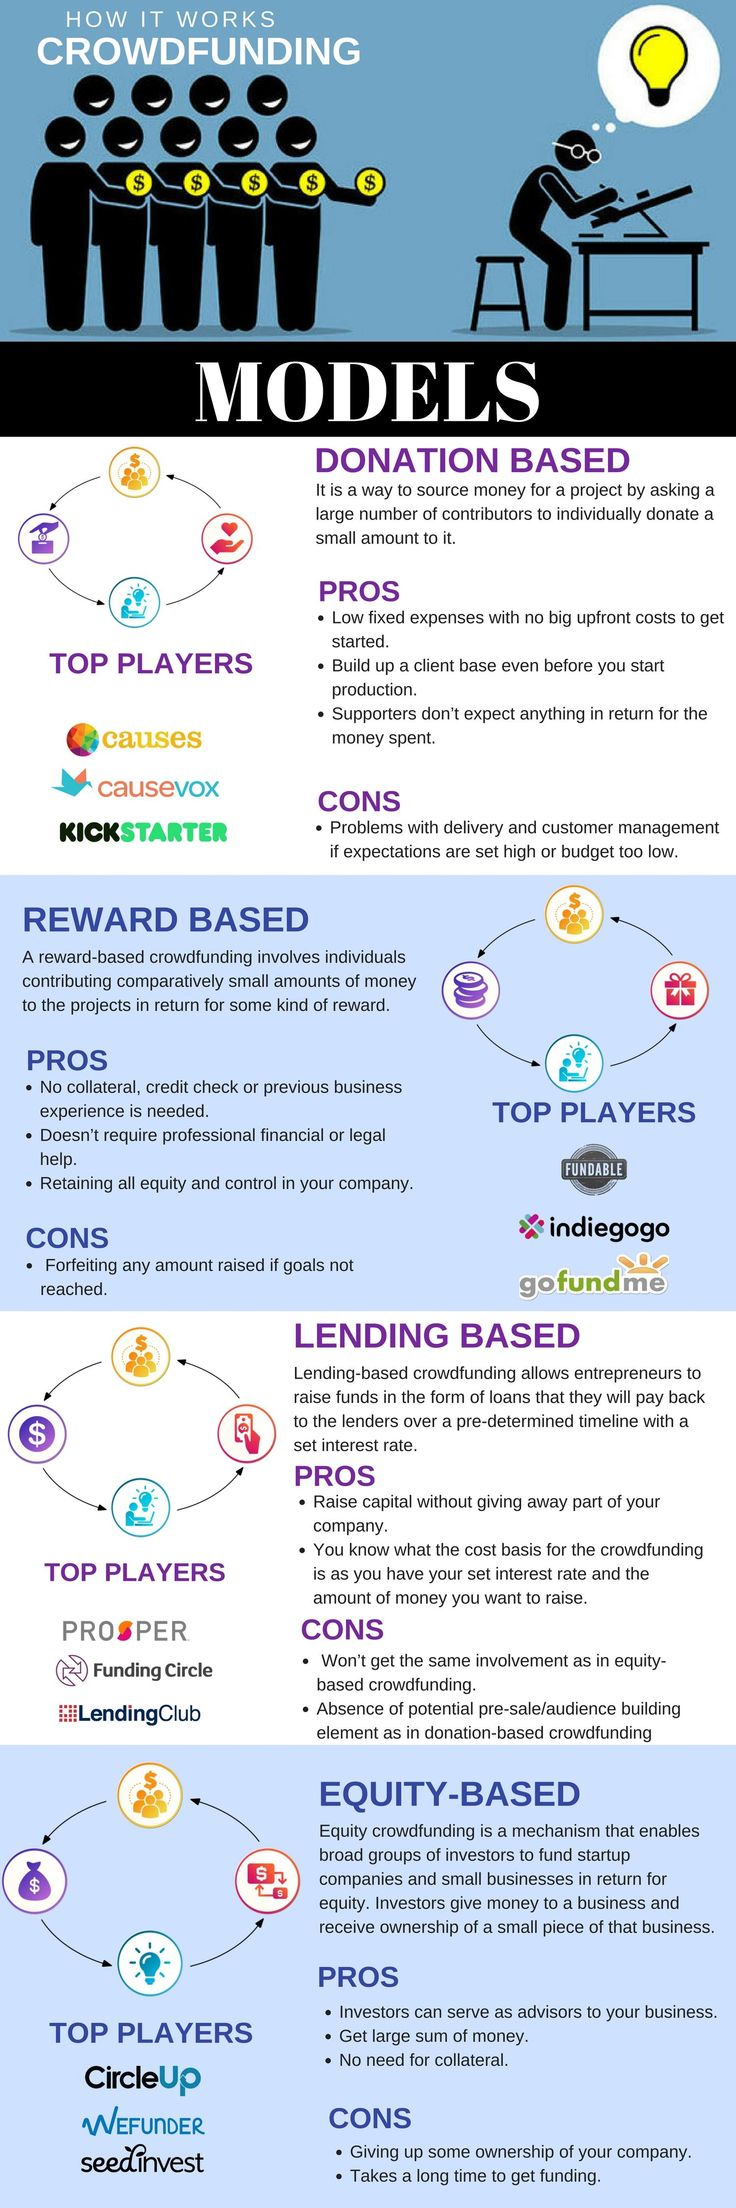 Different crowdfunding models! #infographic http://bit.ly/2mvUxoF